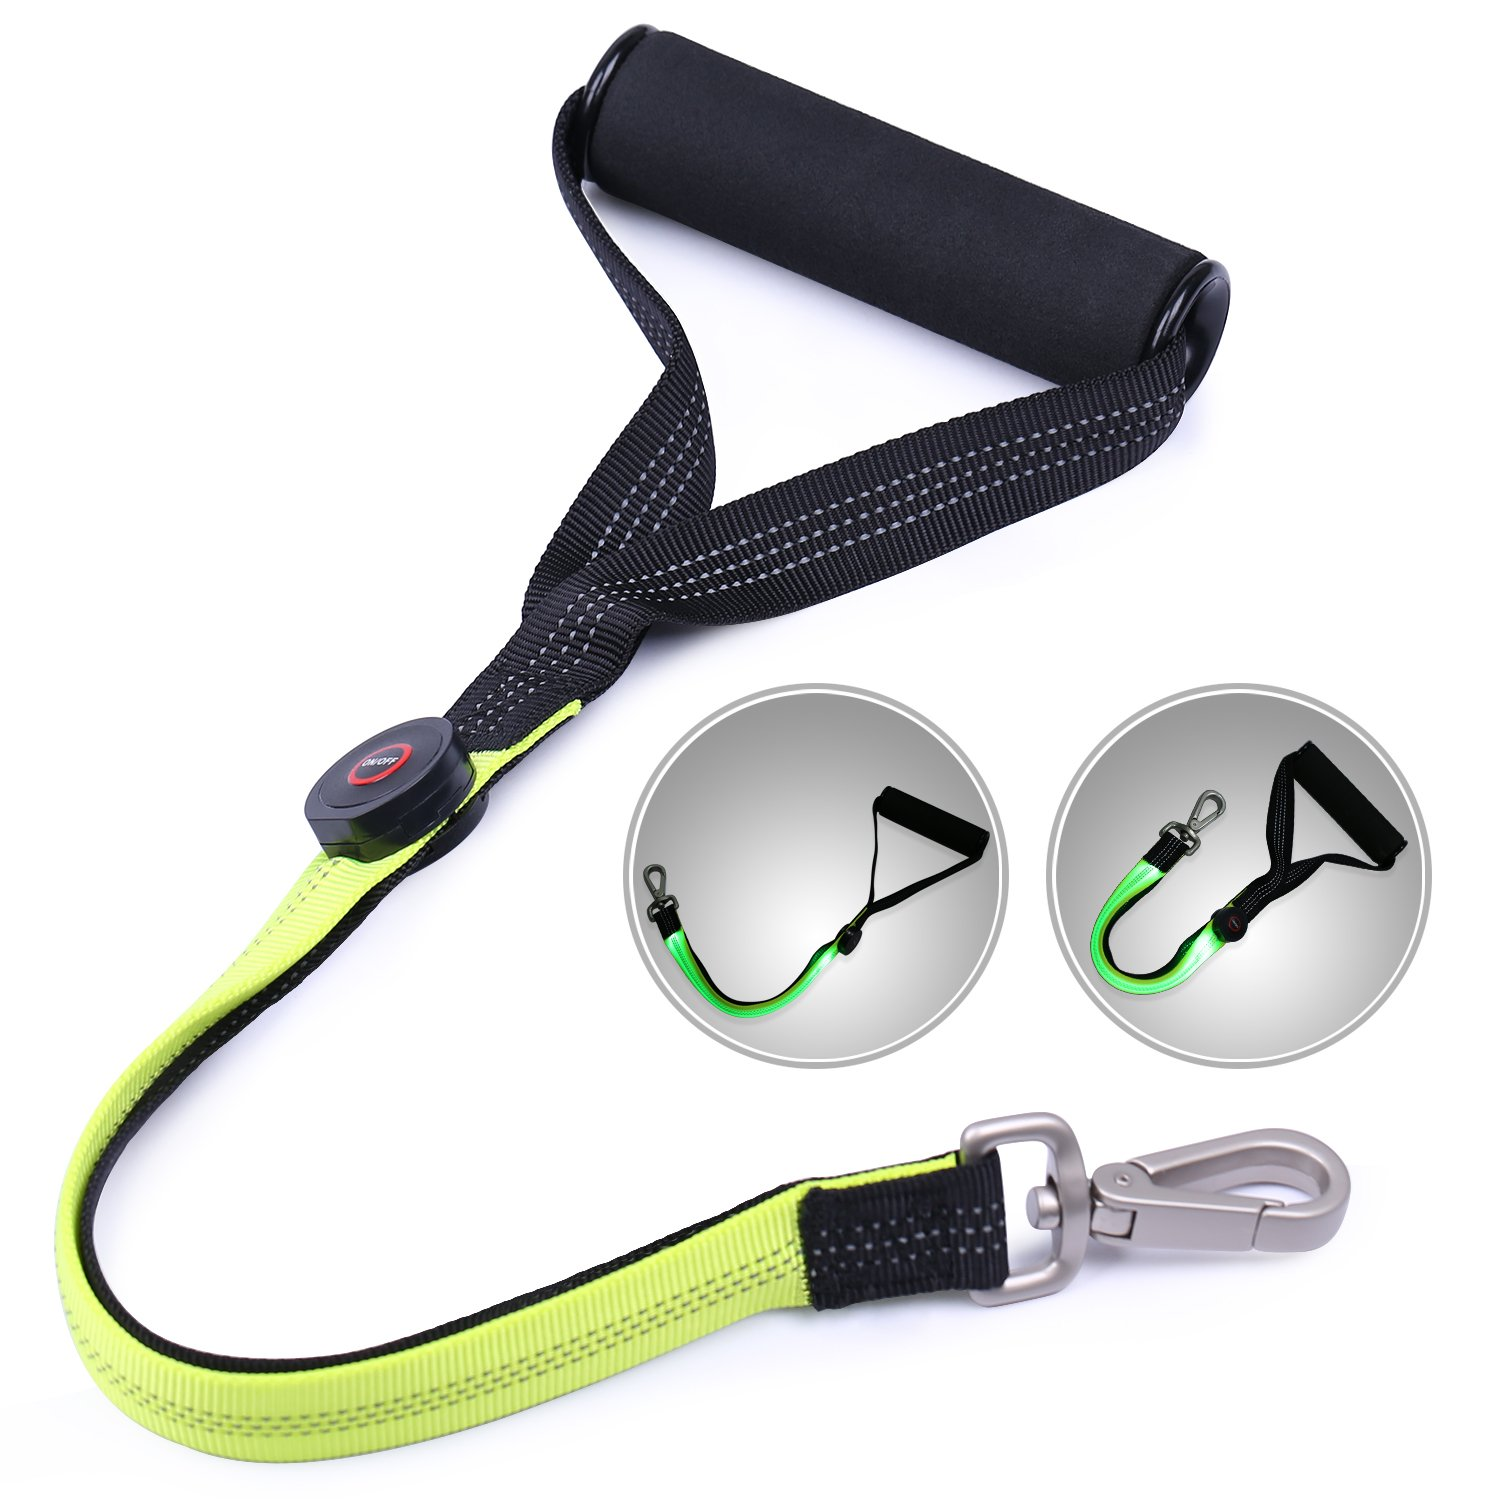 Fluorescent green AISITIN Heavy Duty Dog Leash, LED Strong Rope Reflective Nylon Night Pet Leash with Comfortable Padded Handle Durable Safety Lighted Dog Leashes for Night Walking Training Medium Large Dogs (Green)